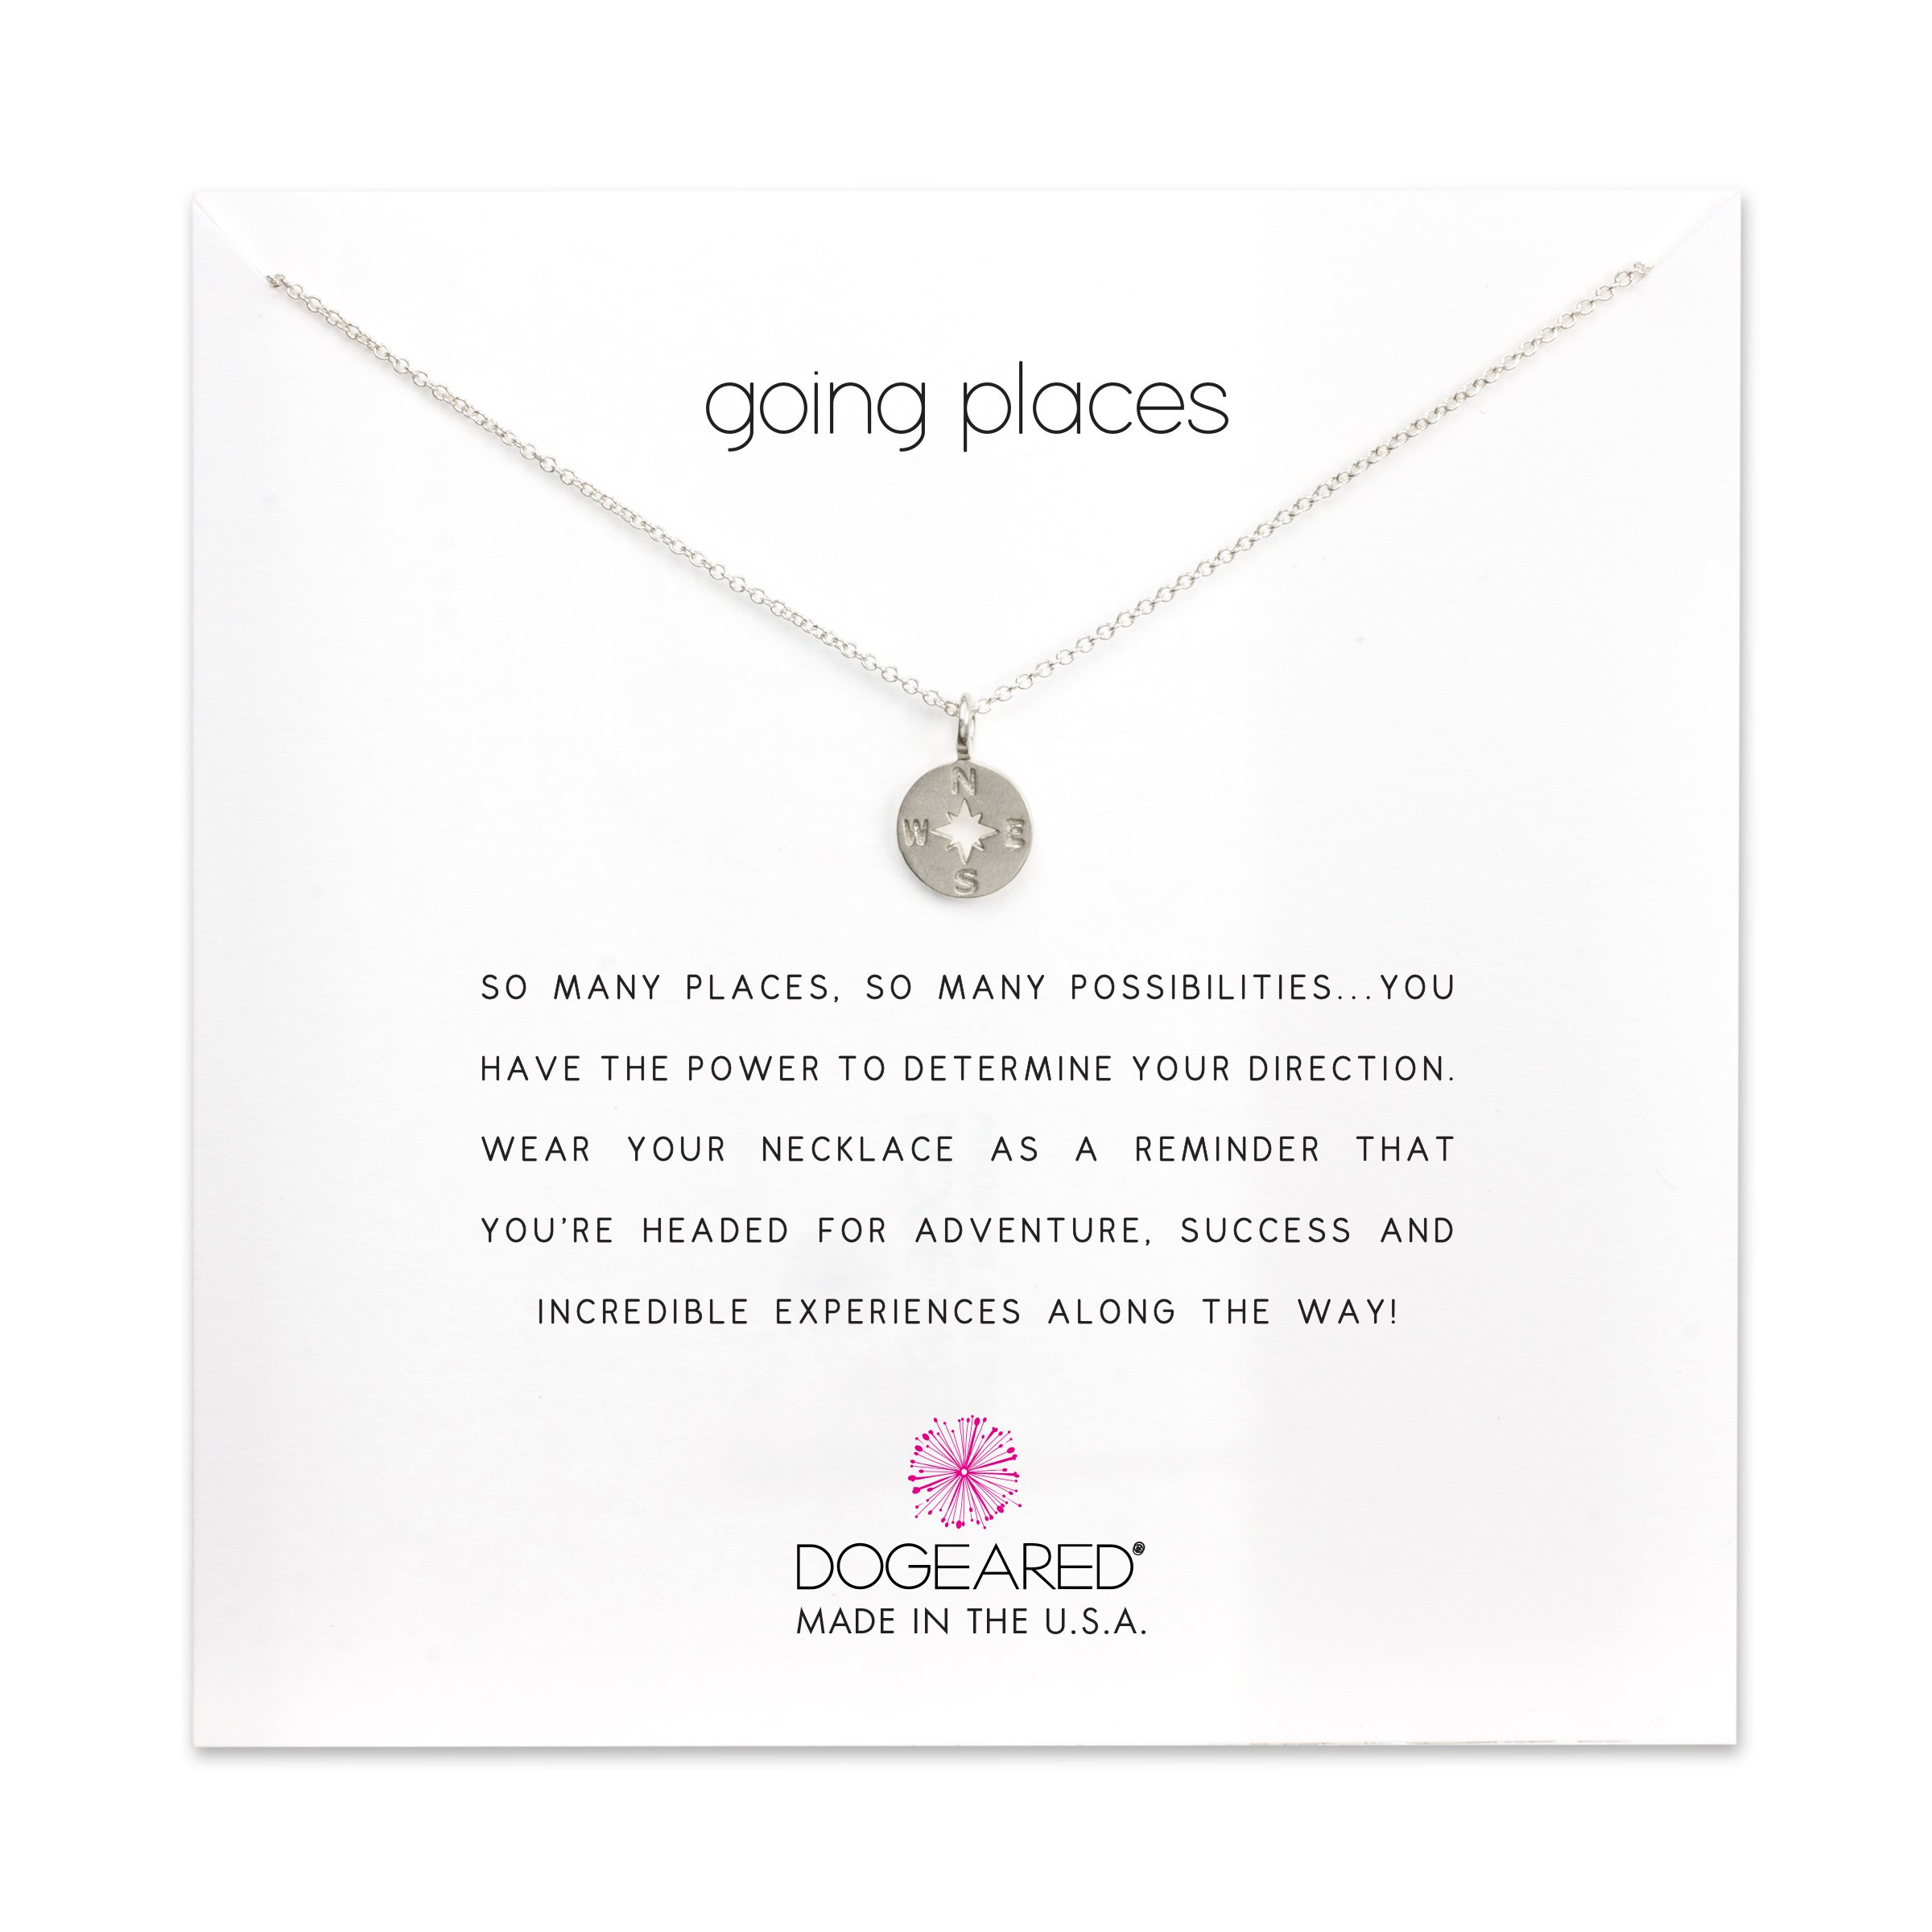 Dogeared Women's Going Places Compass Reminder Necklace Sterling Silver One Size